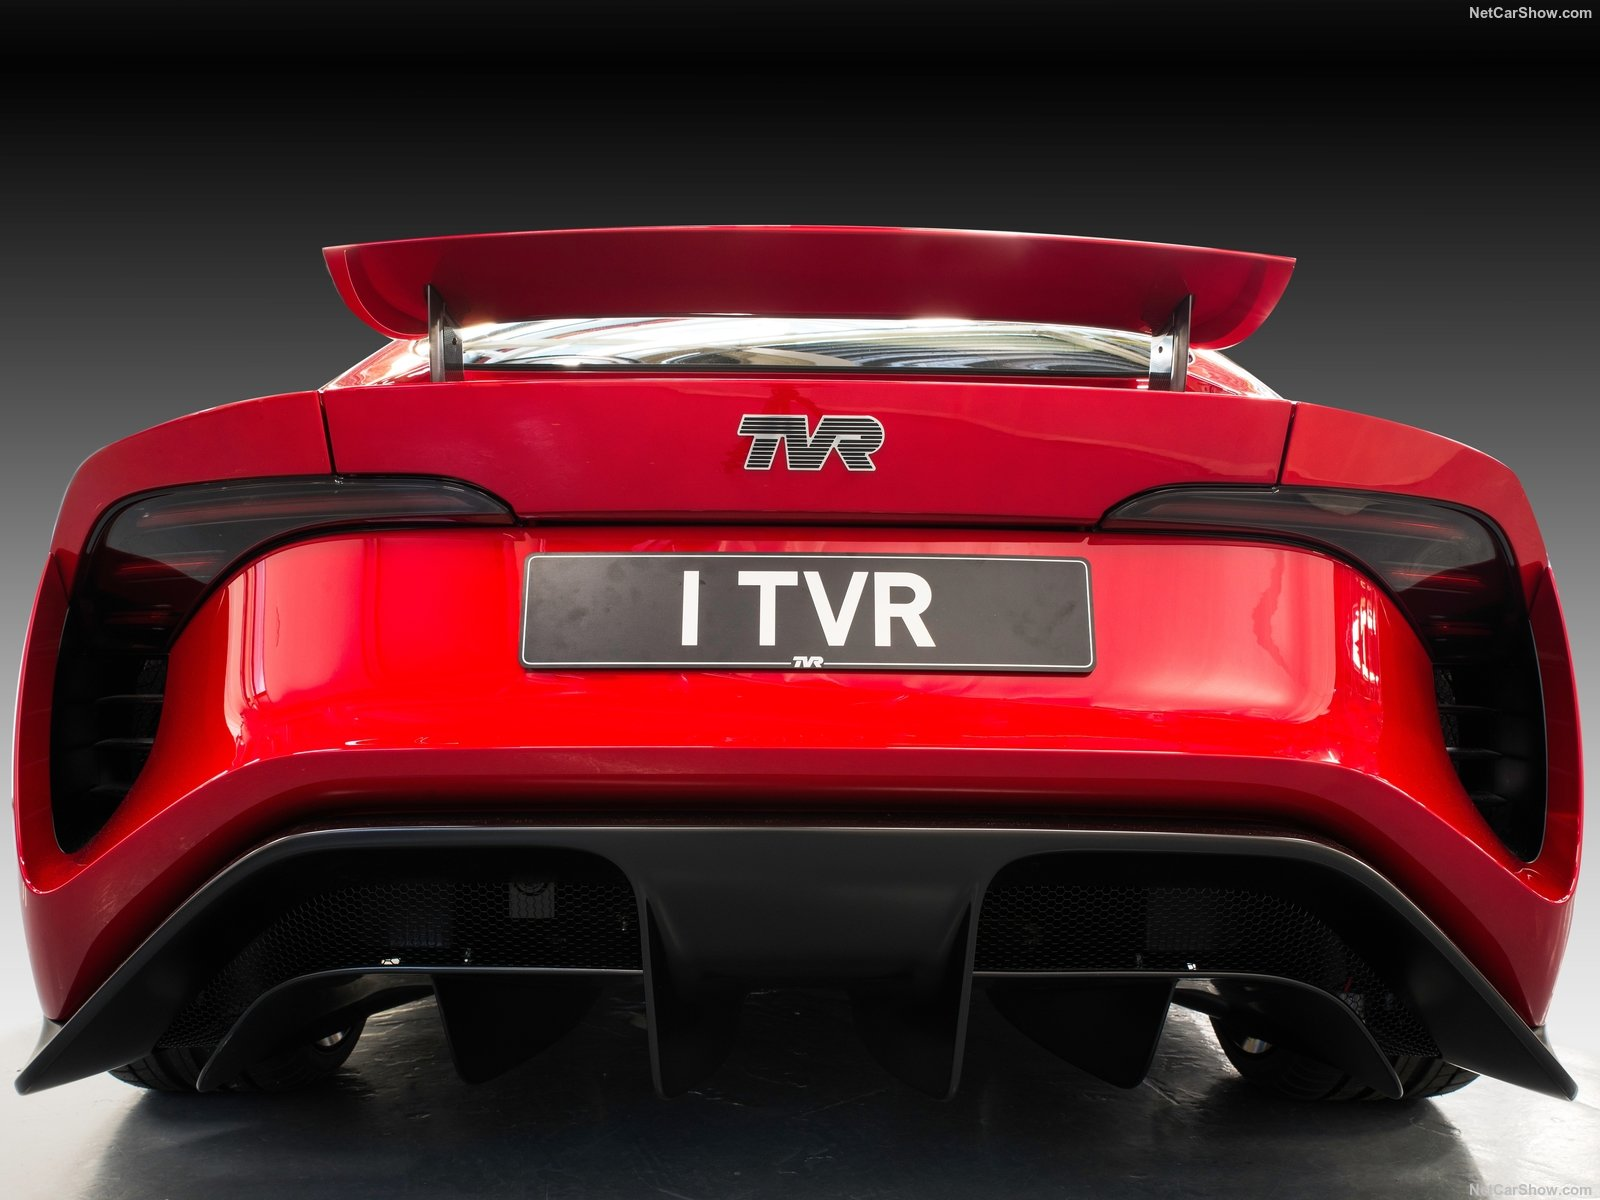 TVR-Griffith-2019-1600-08 Amazing Tvr Griffith Left Hand Drive Cars Trend